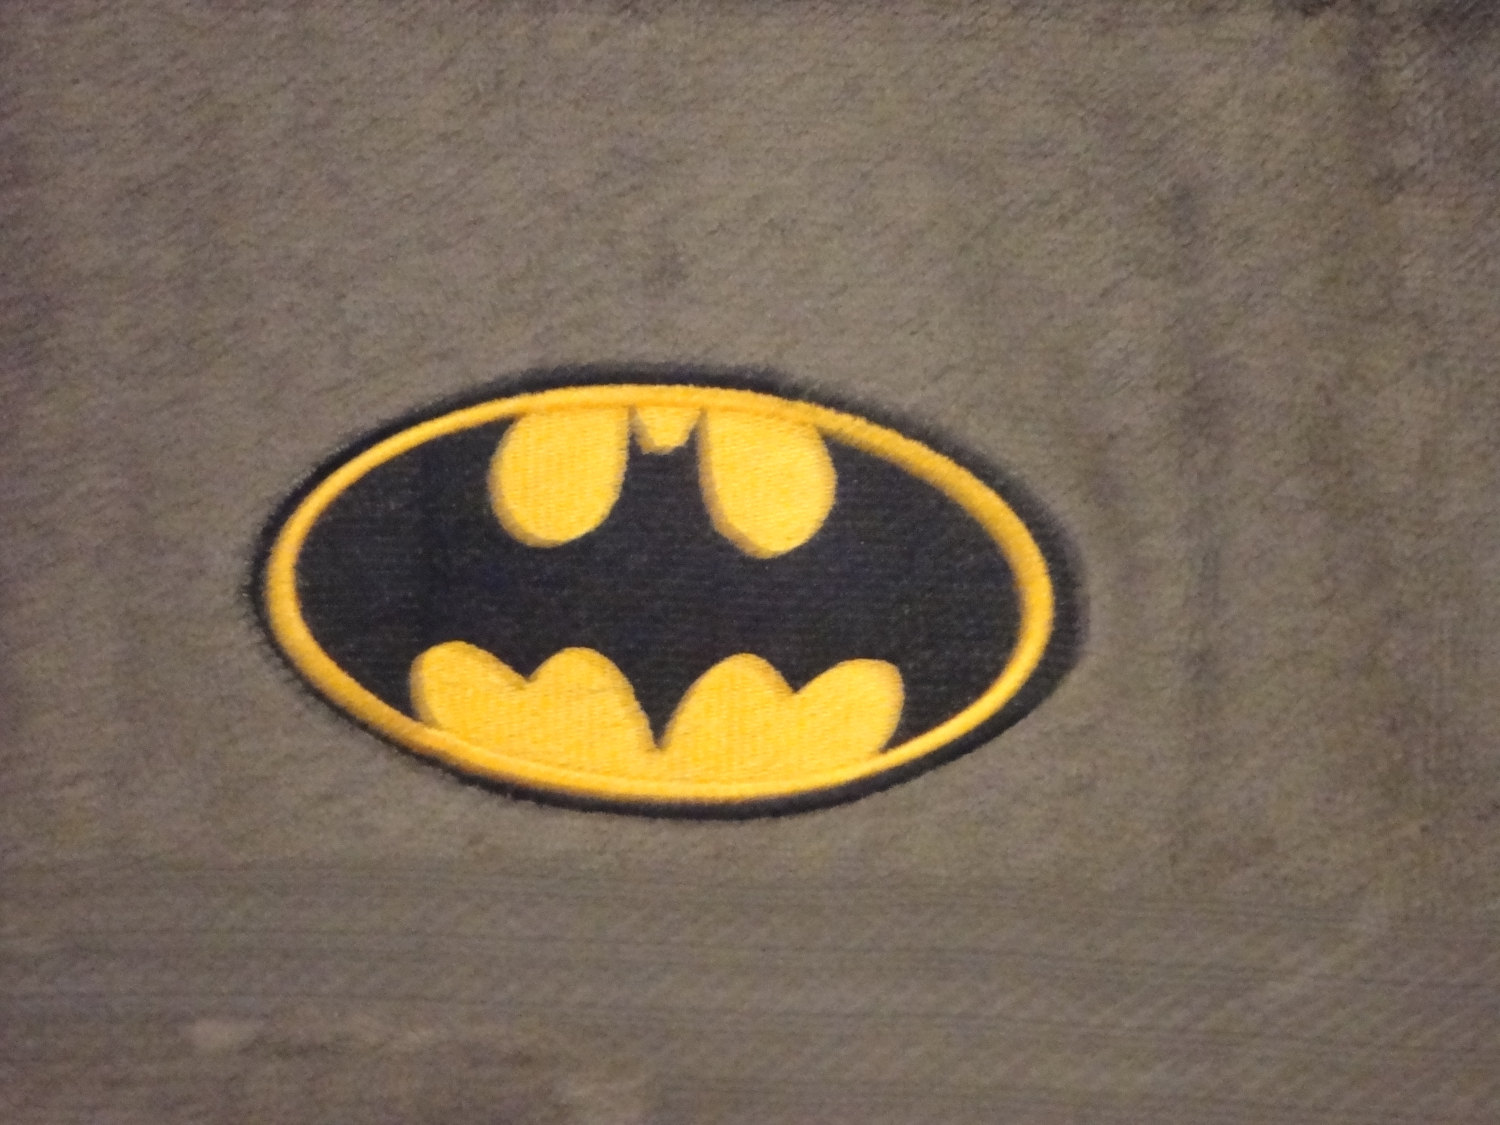 Batman logo design on towel18